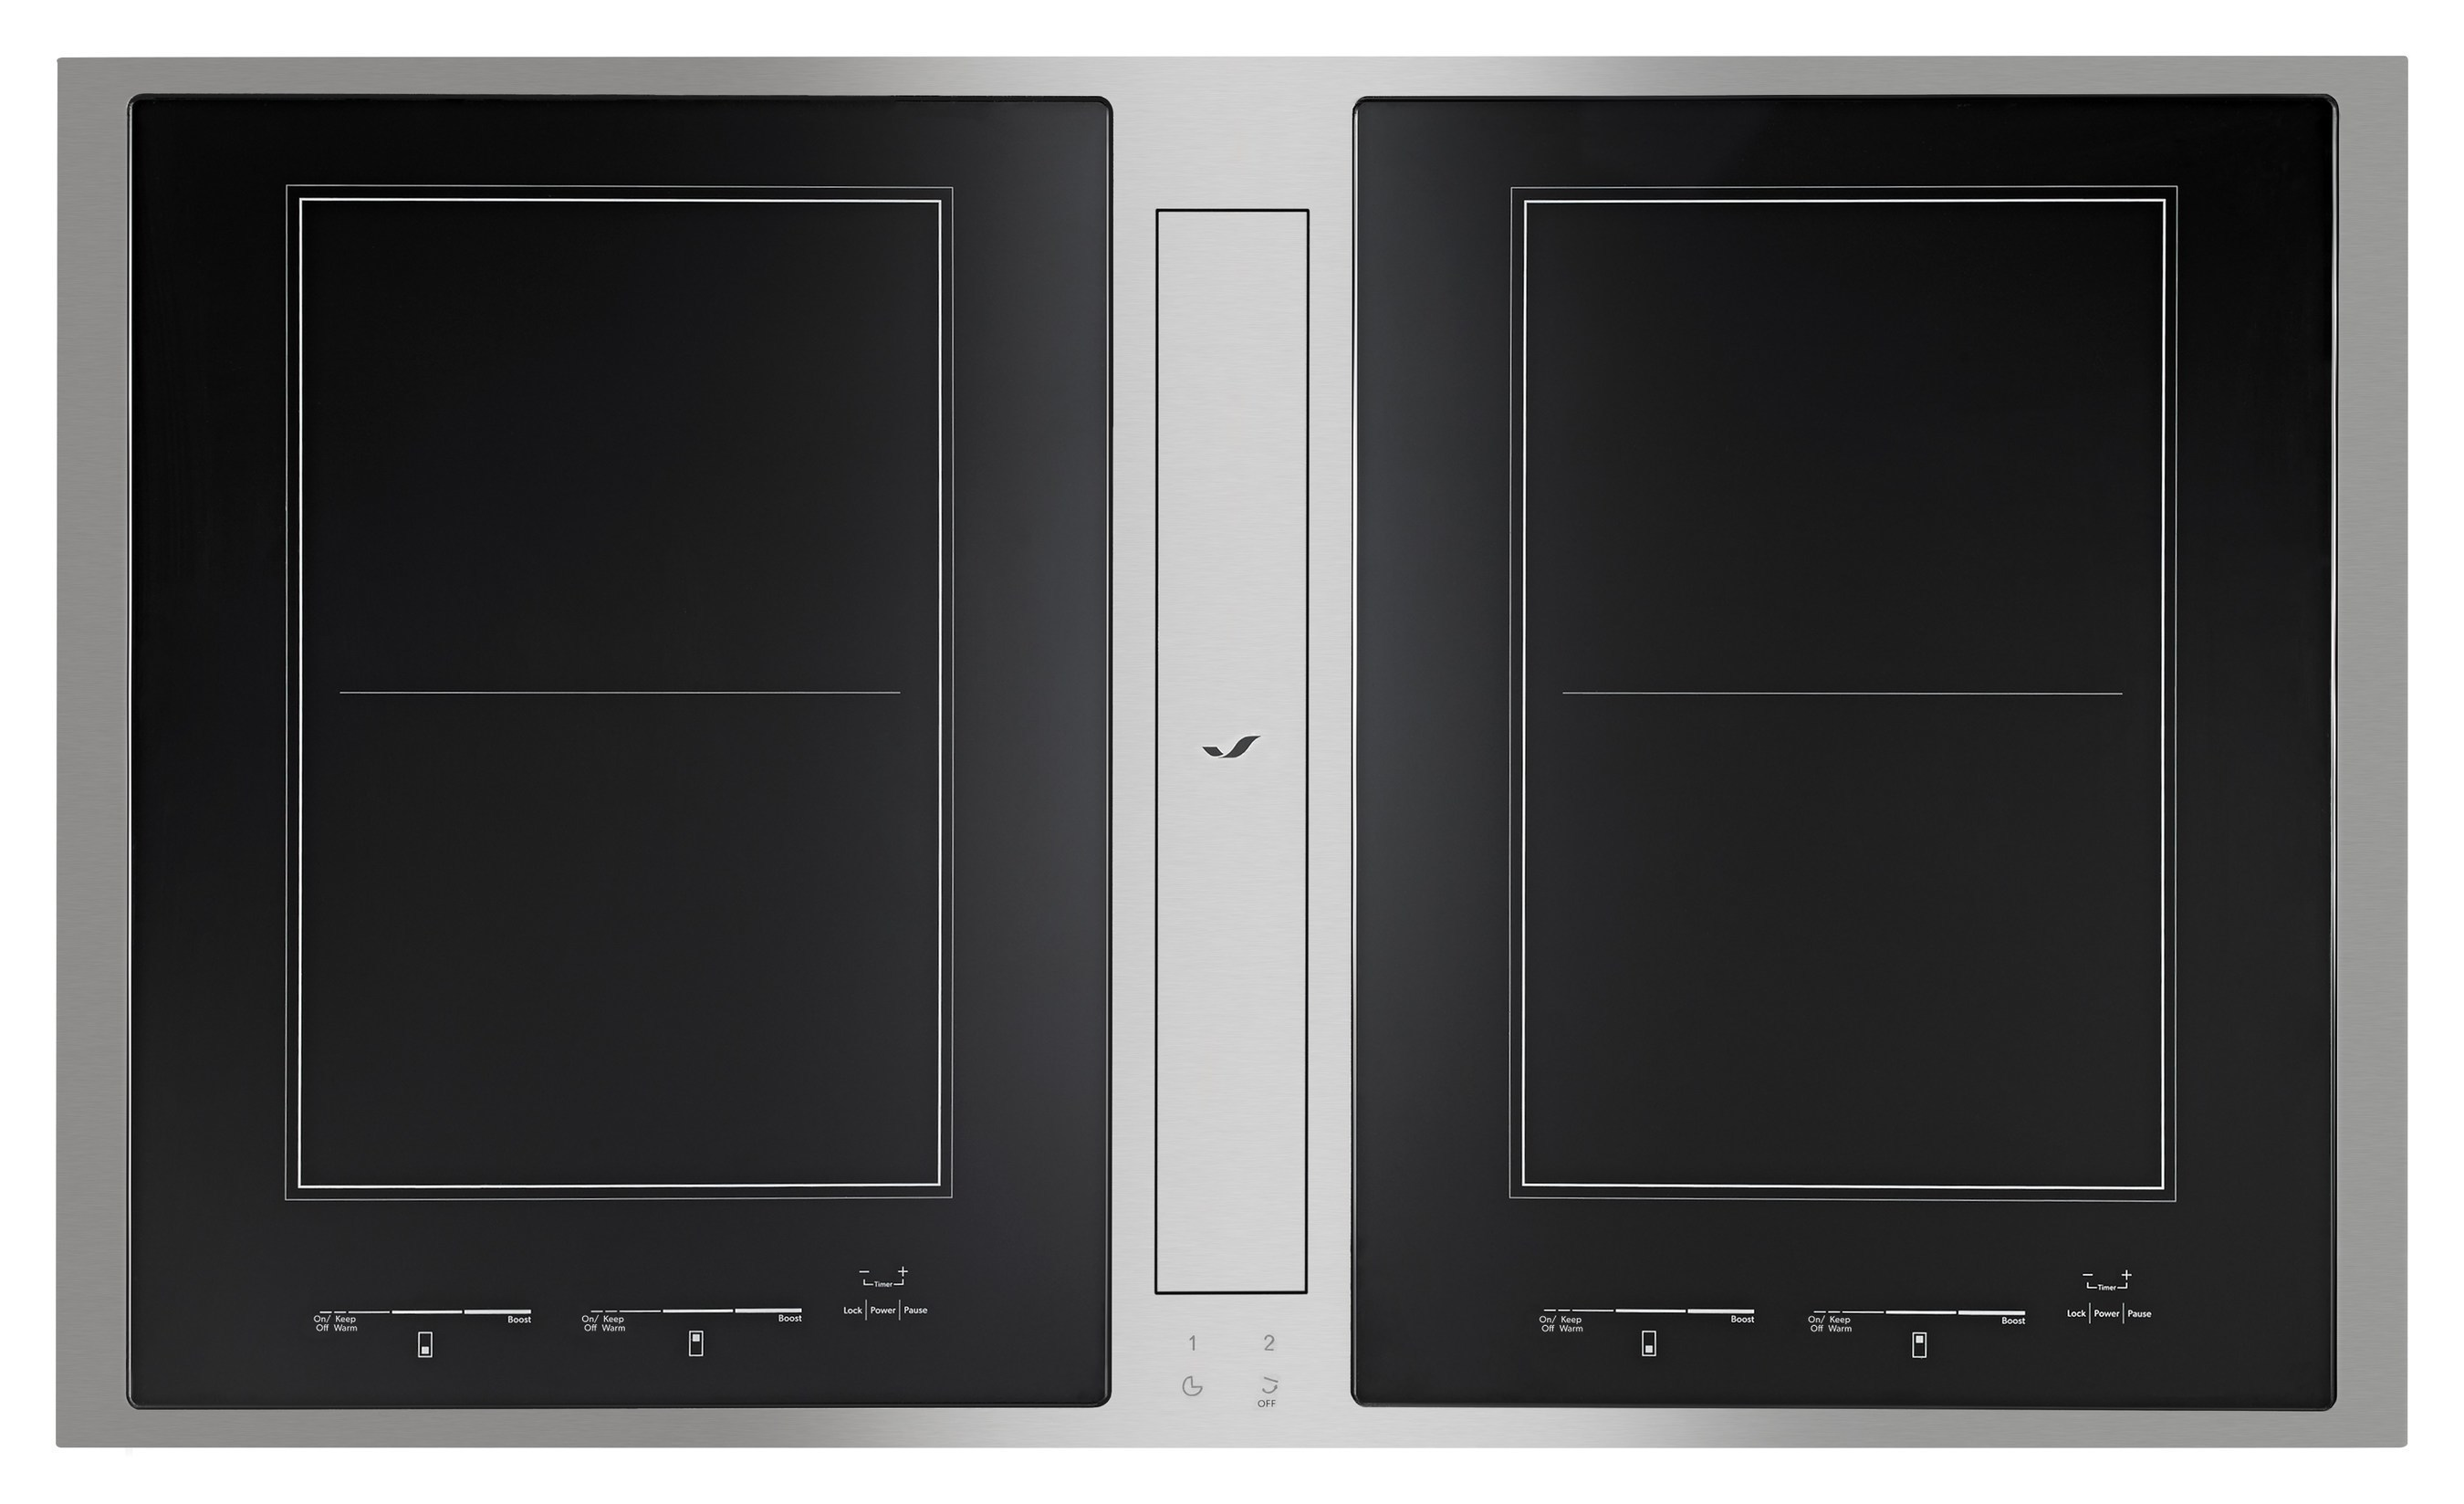 First Induction Downdraft Cooktop from Jenn-Air